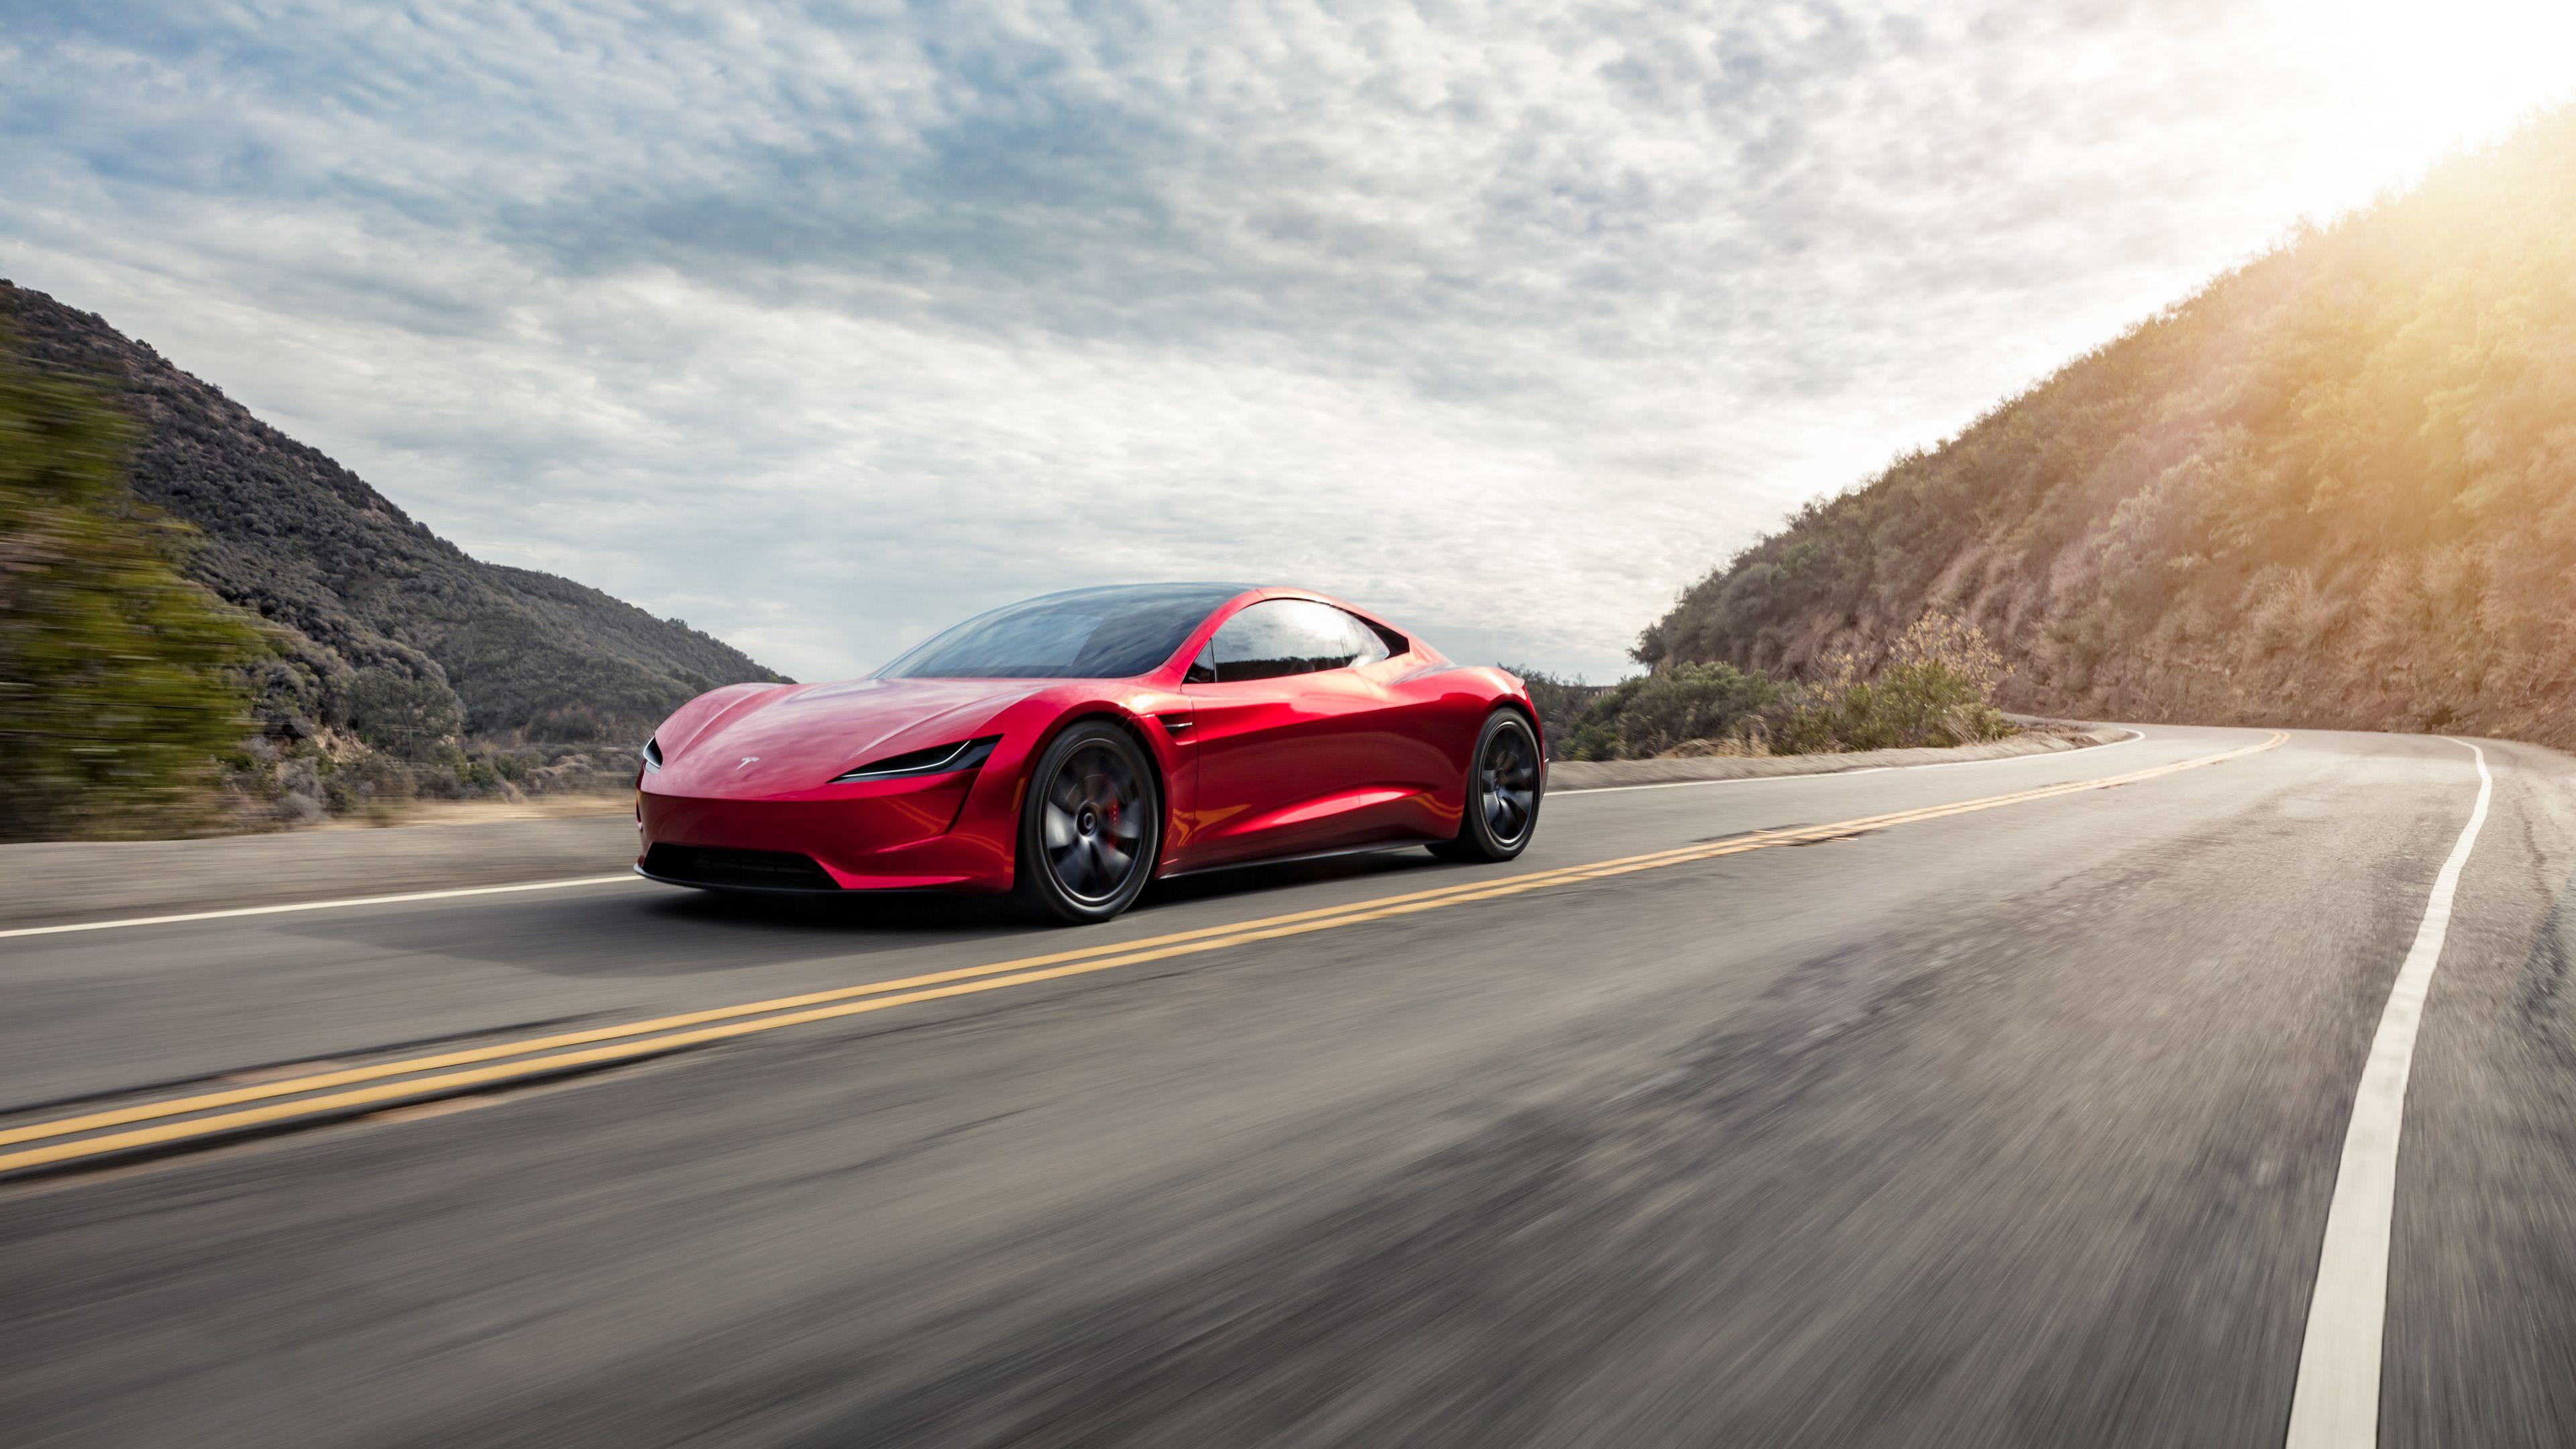 2018 Tesla Roadster Side View 4k Tesla Wallpapers Tesla Roadster Wallpapers Hd Wallpapers Electric Cars Wallpapers 4k Wallpa Tesla Roadster Roadsters Tesla